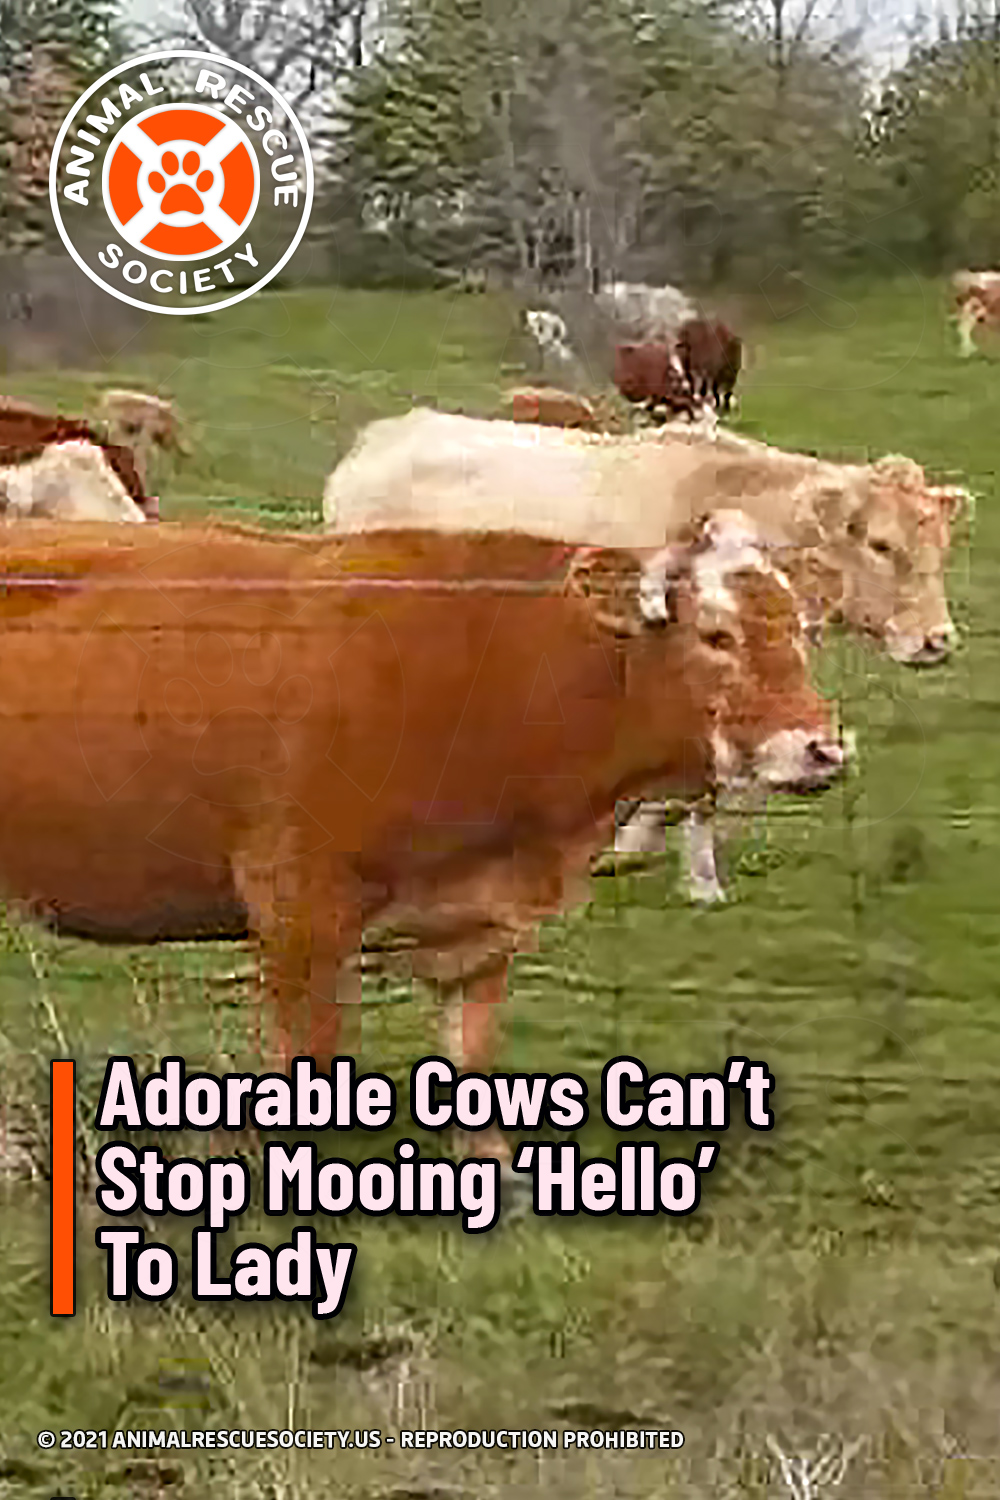 Adorable Cows Can't Stop Mooing 'Hello' To Lady